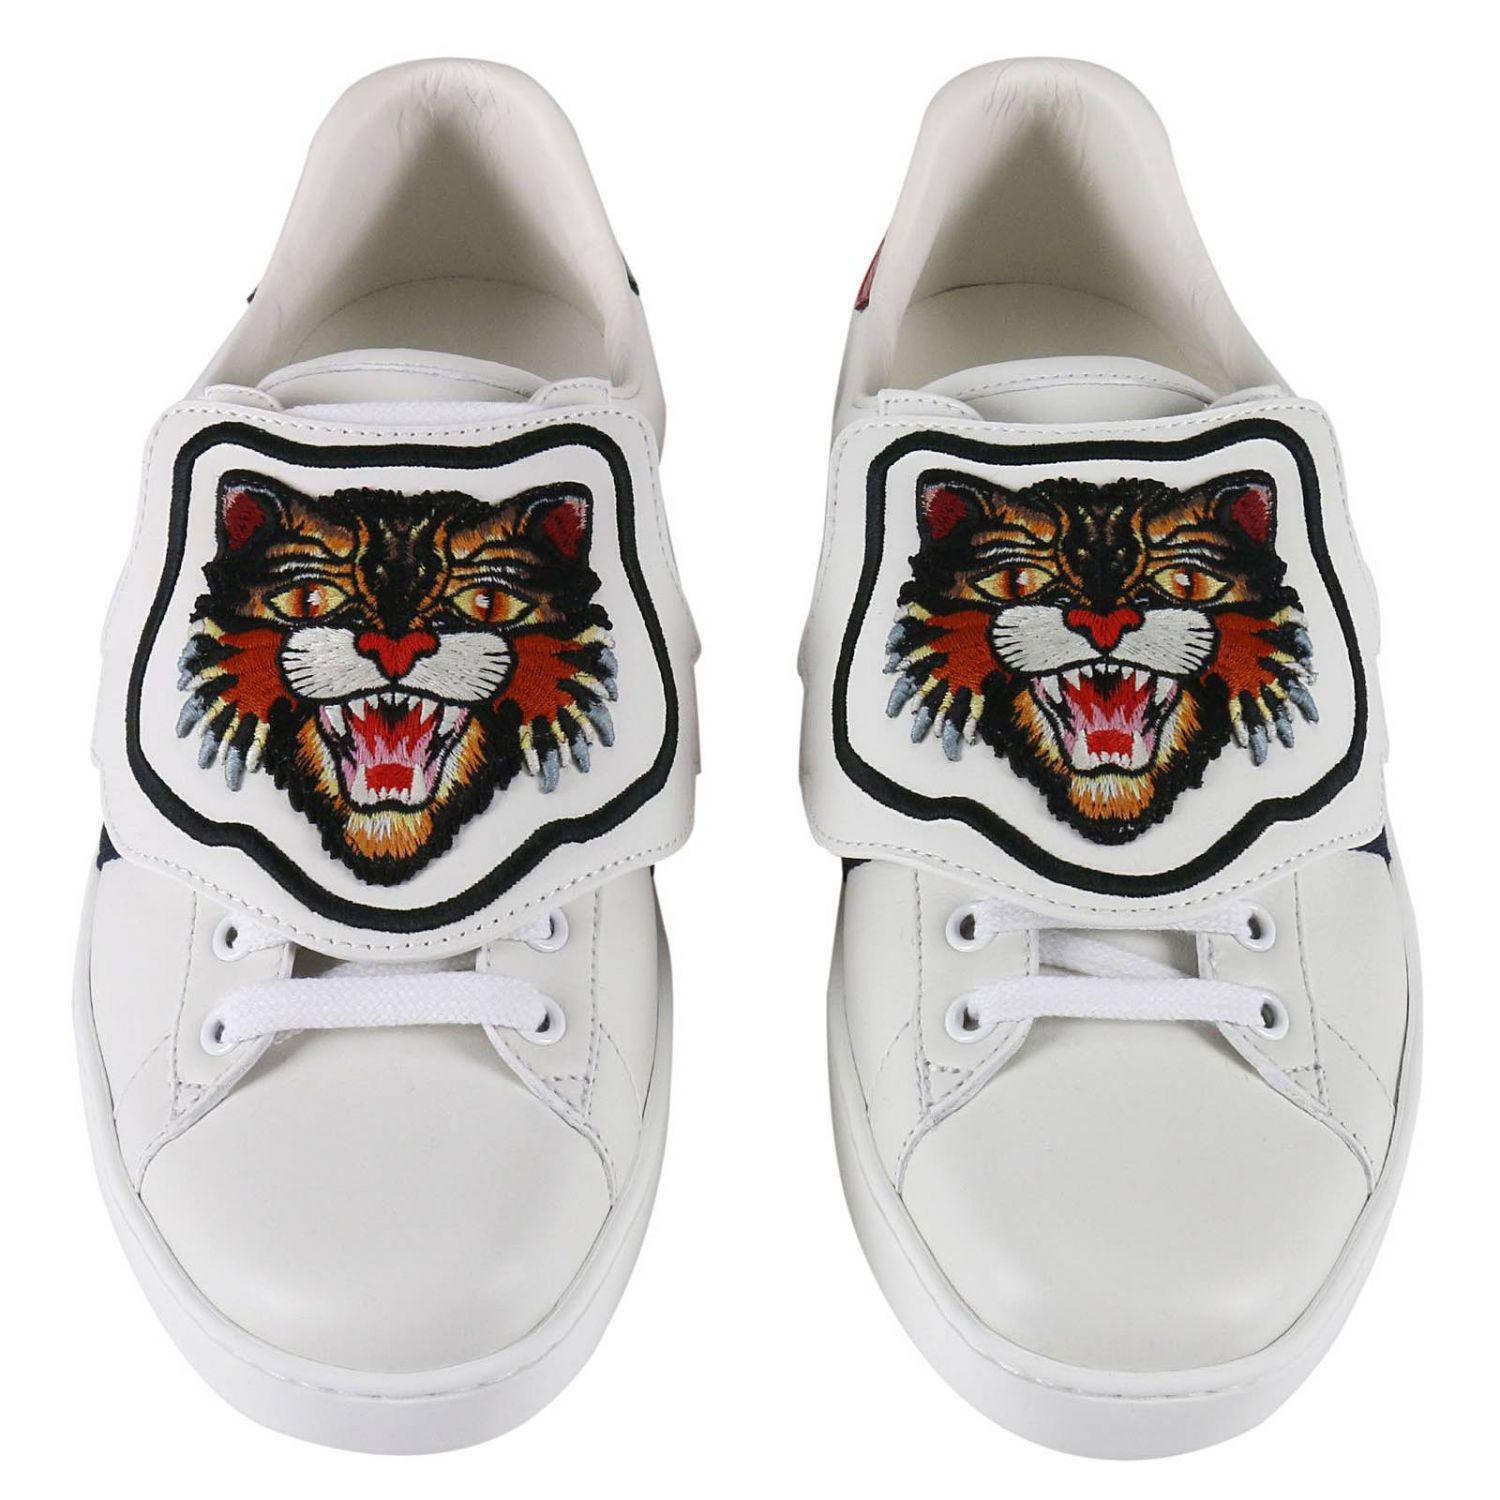 9b0a6007943 Gucci Ace Sneakers With Embroidered Angry Cat Removable Patches And ...